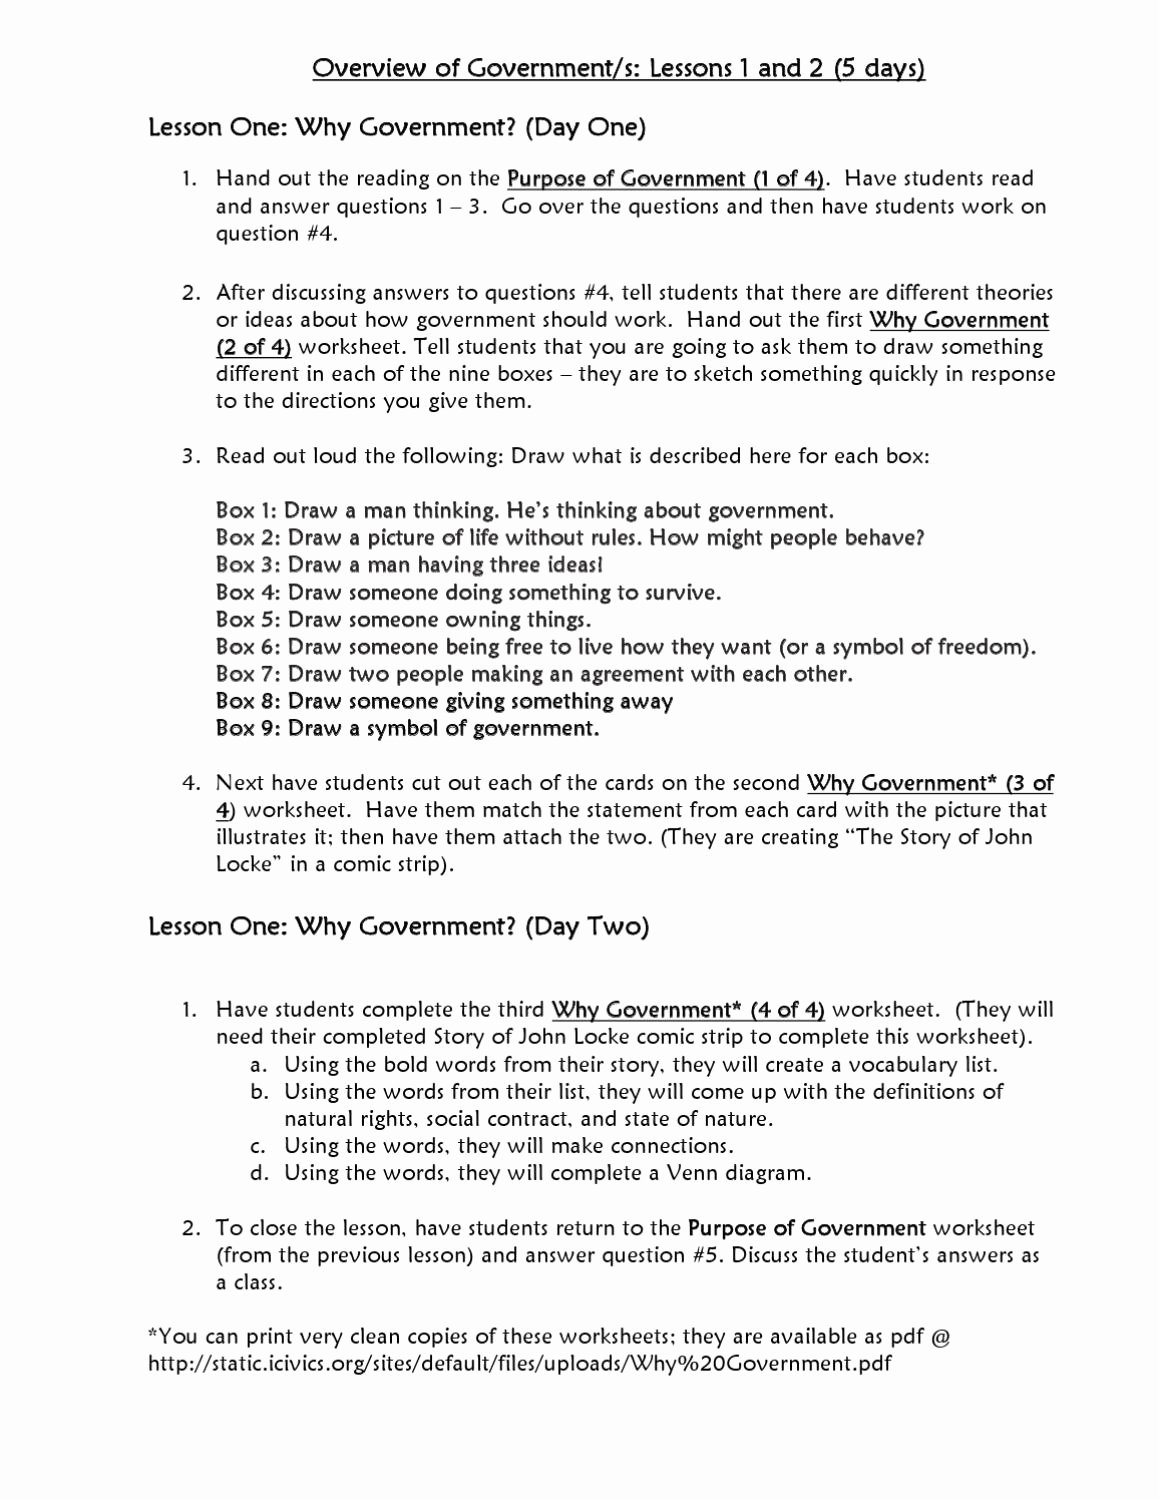 Branches Of Government Worksheet Pdf Elegant Three Branches Government Worksheet Pdf the Best